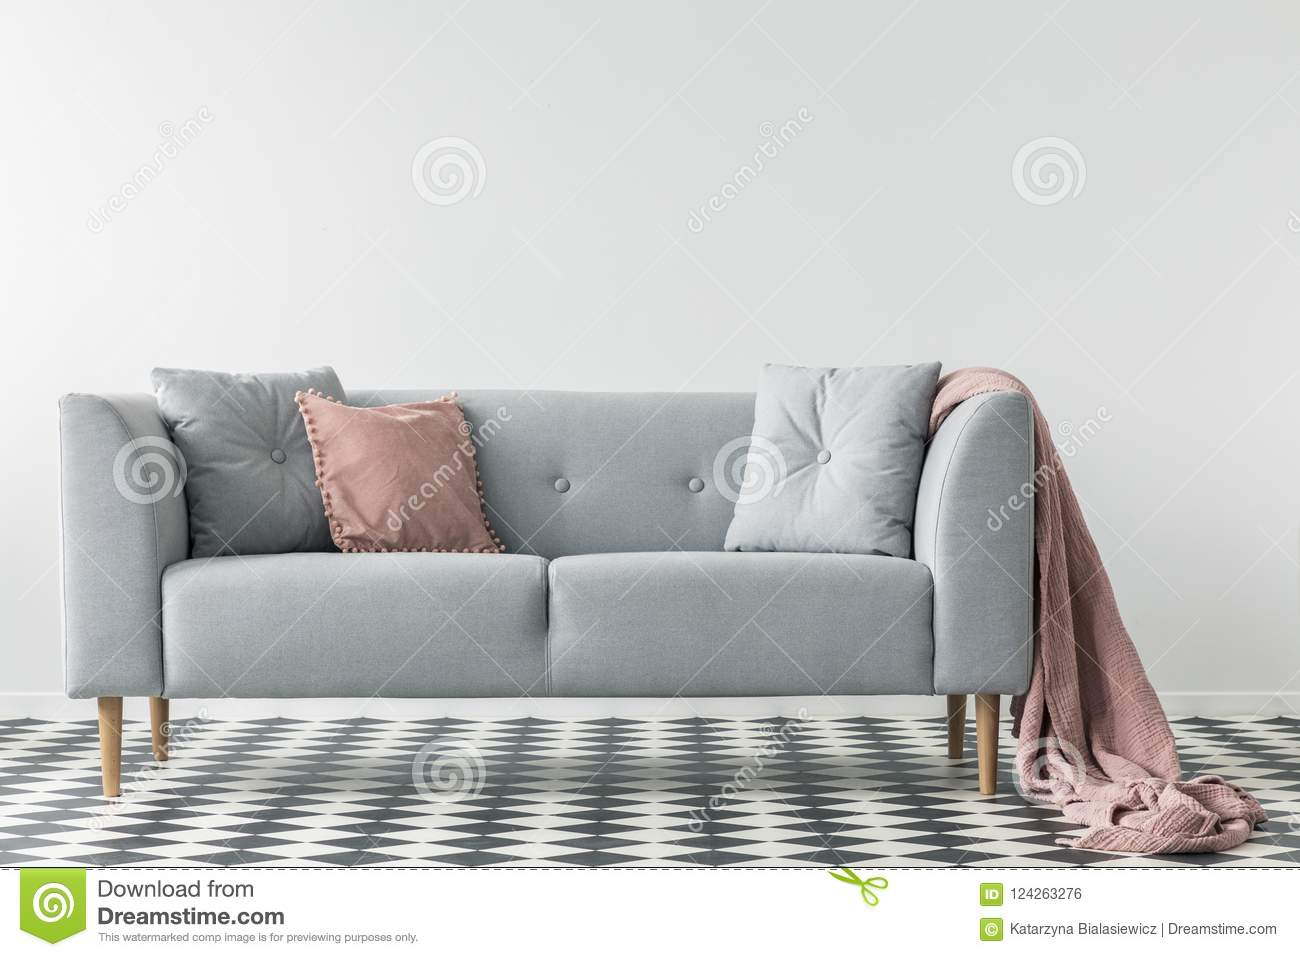 Pink blanket on grey couch with pillows on checkered floor in white living  room interior. b1987d2a3